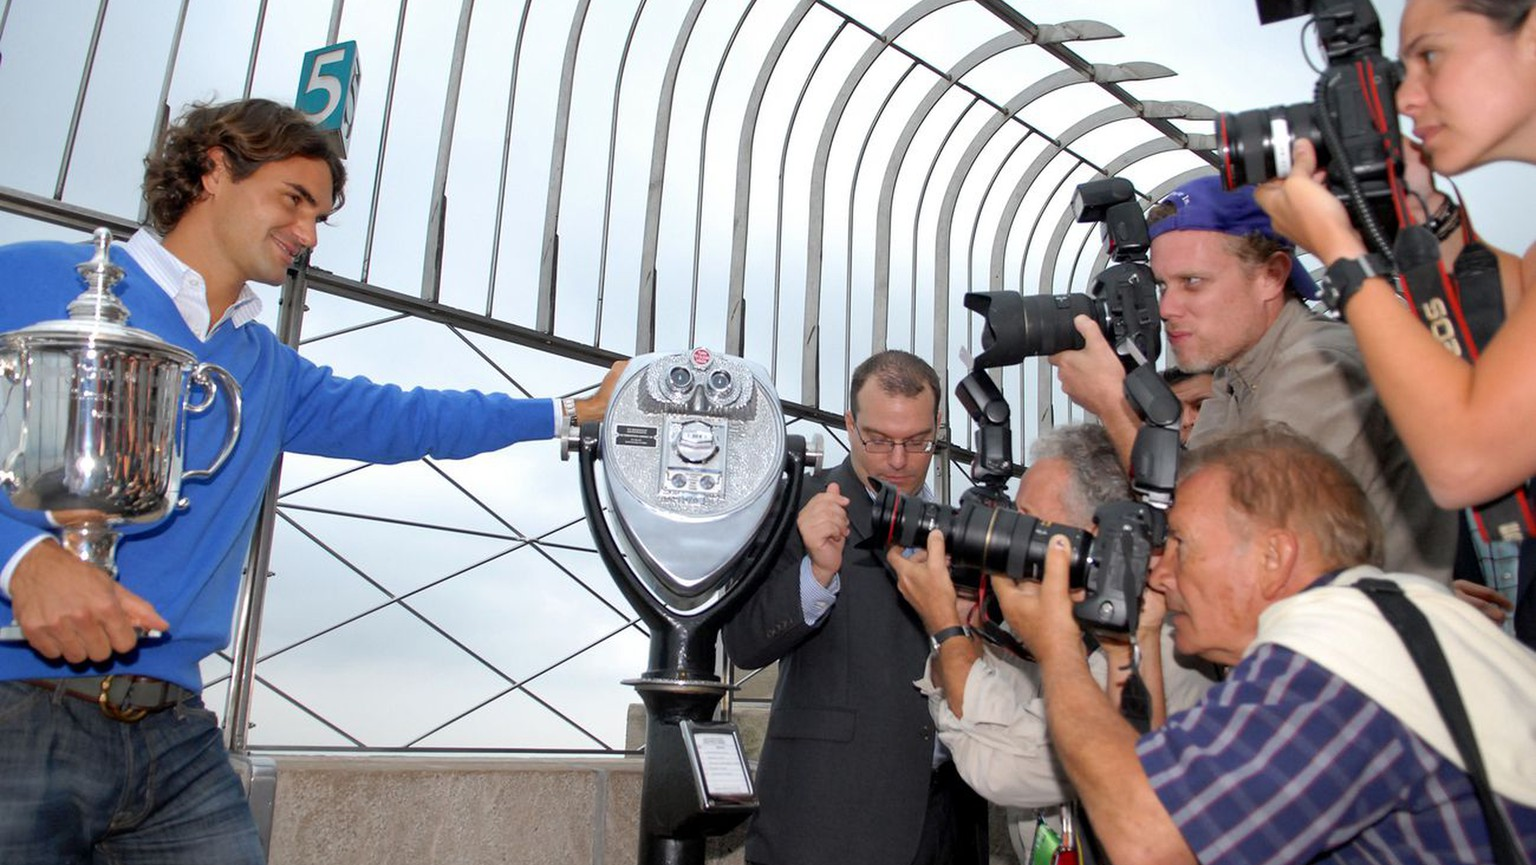 Swiss tennis player Roger Federer appears with his U.S. Open trophy during a photo op on the observation deck of the Empire State Building, Tuesday, Sept. 9, 2008 in New York. Federer won his fifth U.S. Open title Monday by defeating Andy Murray of England putting him one Grand Slam win away from matching American Pete Sampras. (AP Photo/Edouard H.R. Gluck)